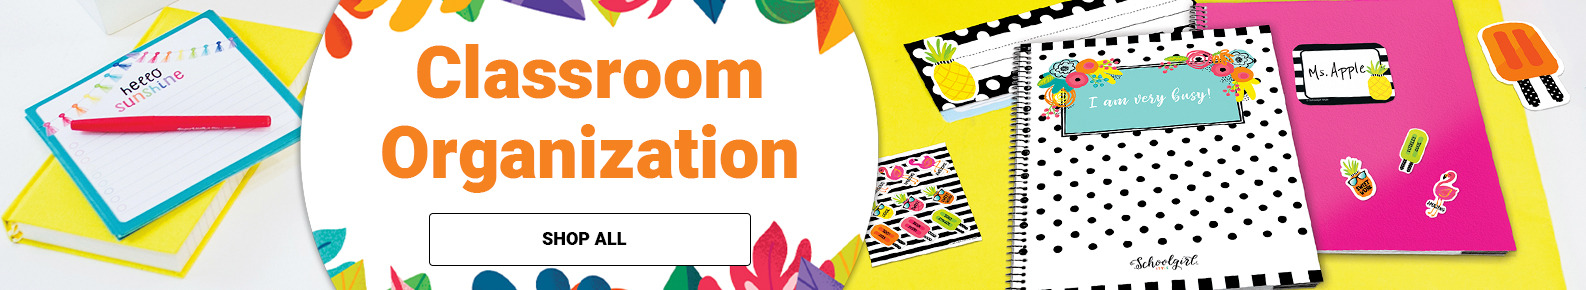 Classroom Organization banner with School Girl Style items